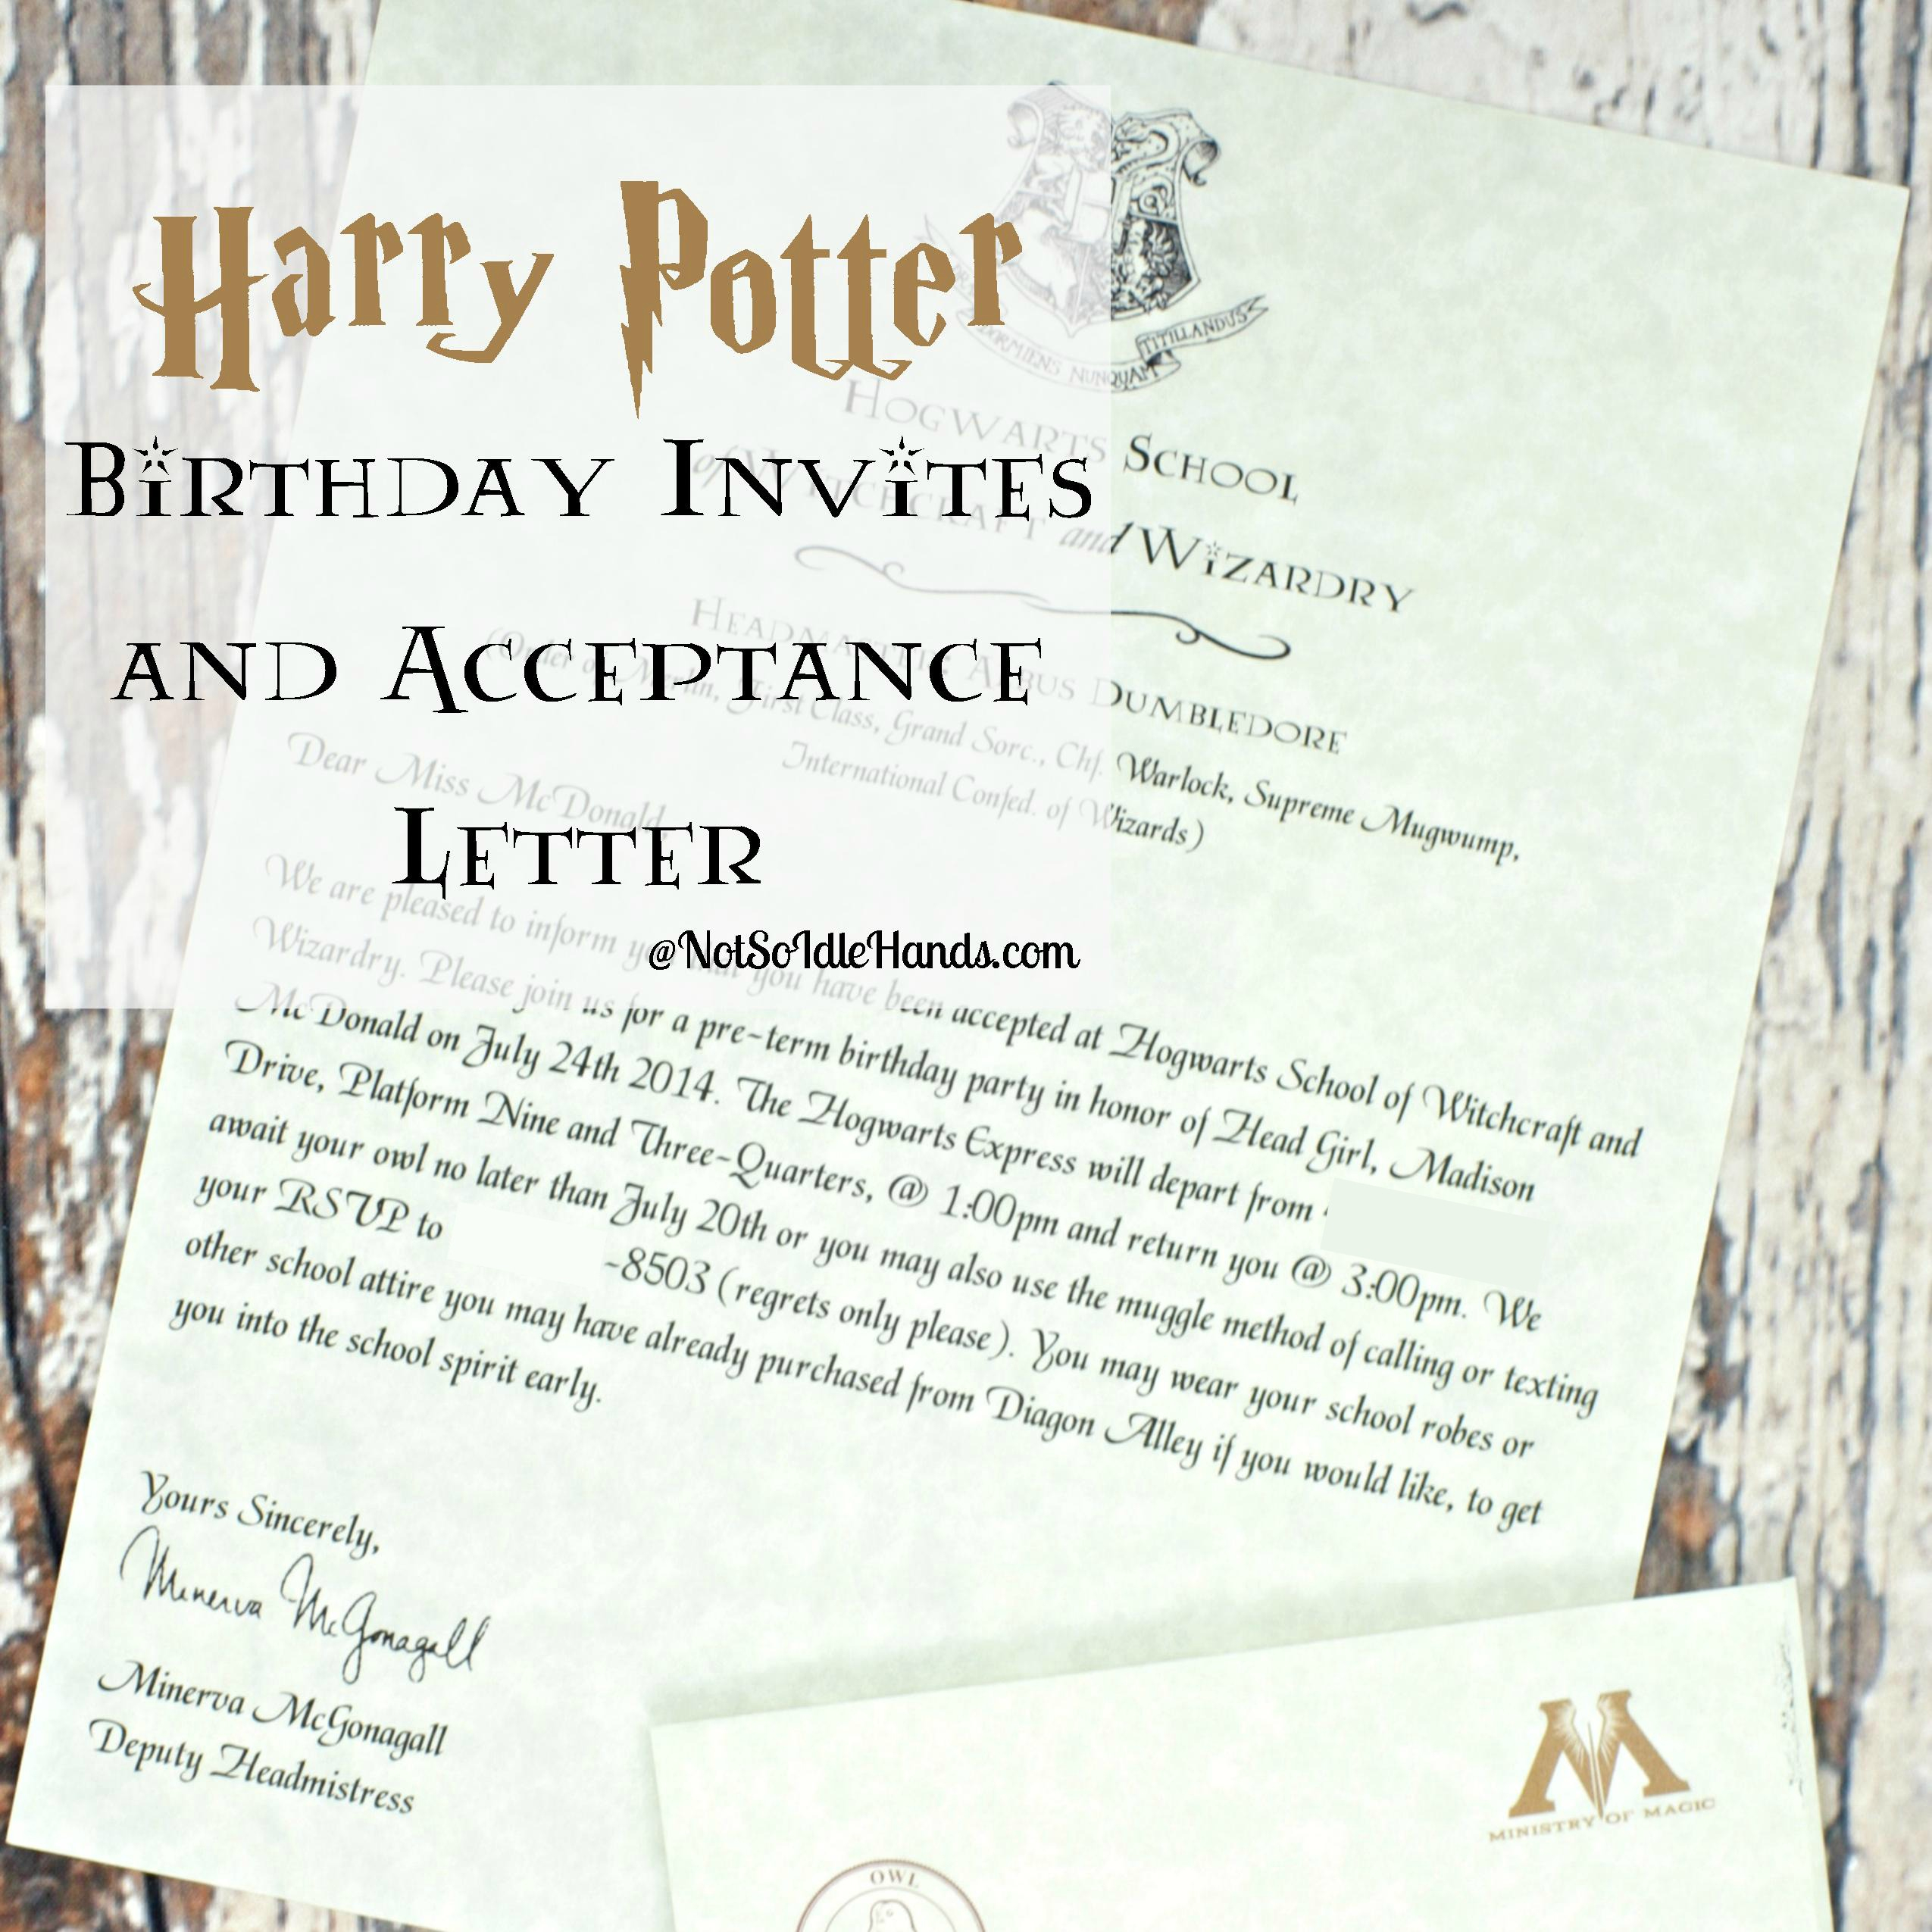 Harry Potter Birthday Invitations And Authentic Acceptance Letter - Harry Potter Birthday Invitations Free Printable